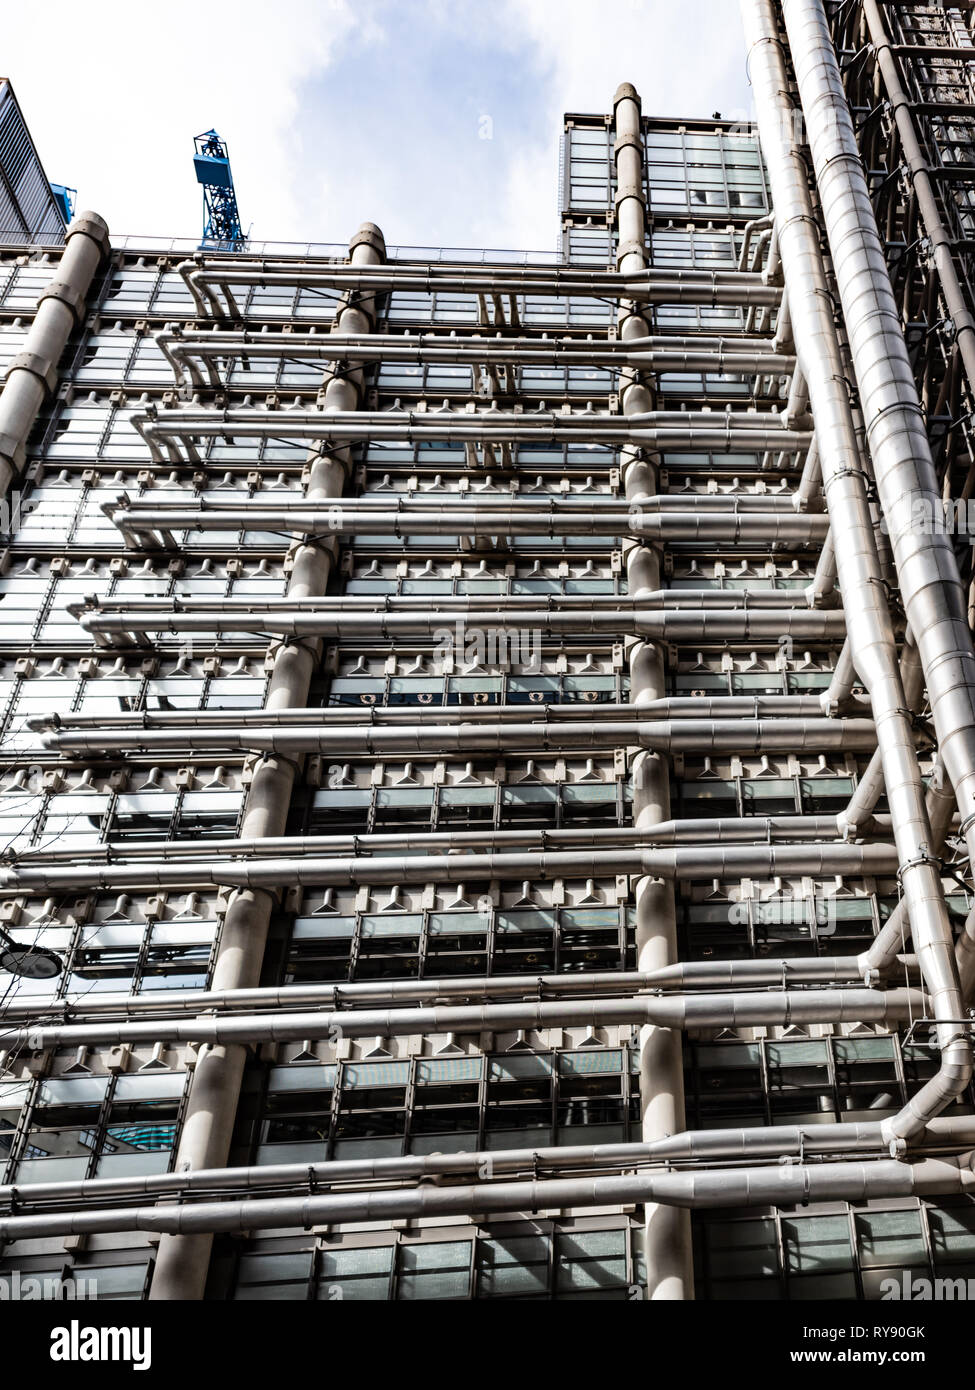 Looking more like a petro-chemical plant than an insurance market, the Lloyds of London building in the City - Stock Image